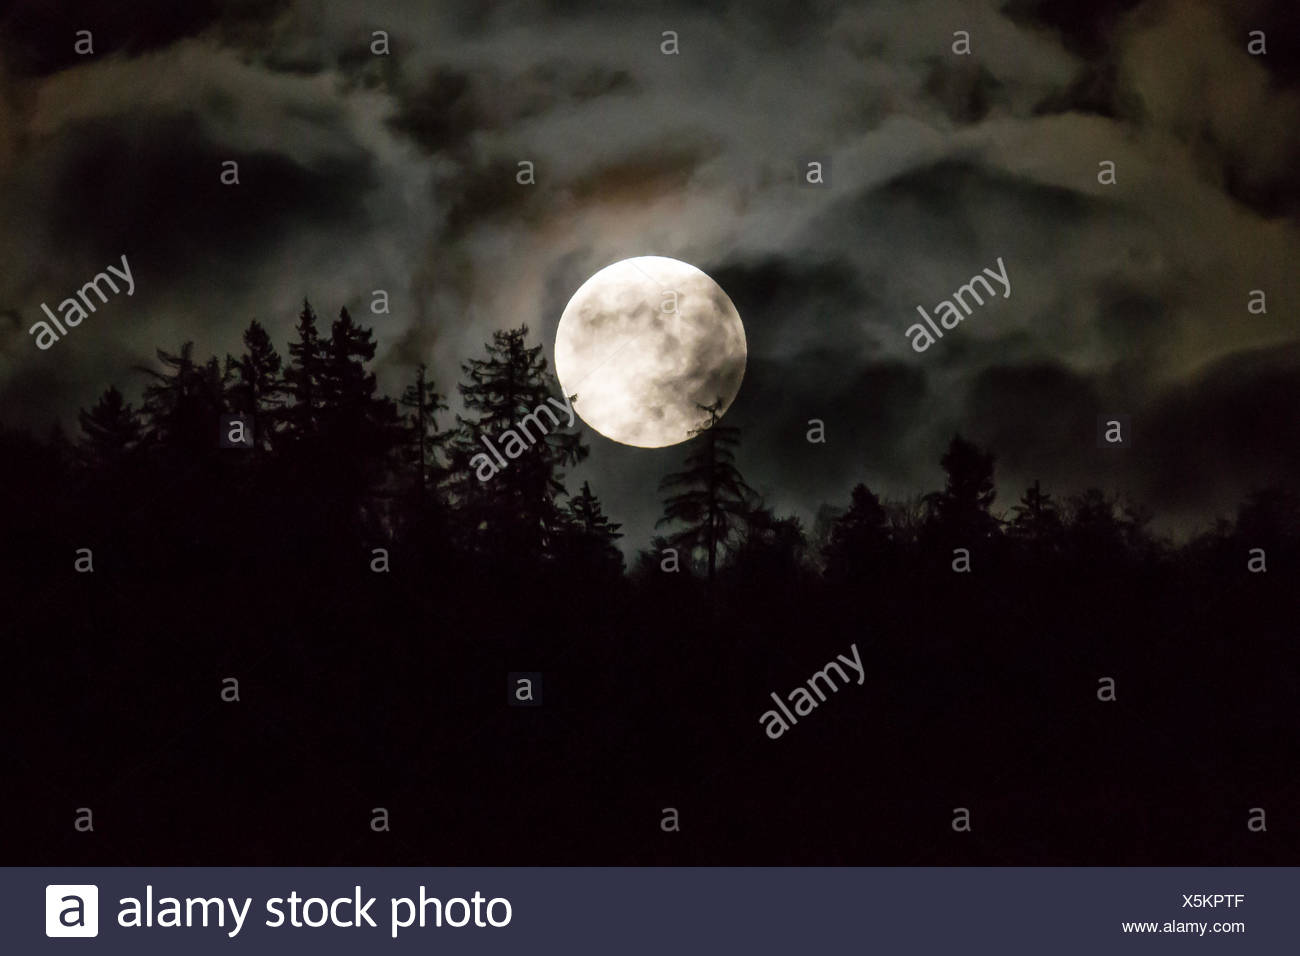 Enveloped moon at night with clouds - Stock Image